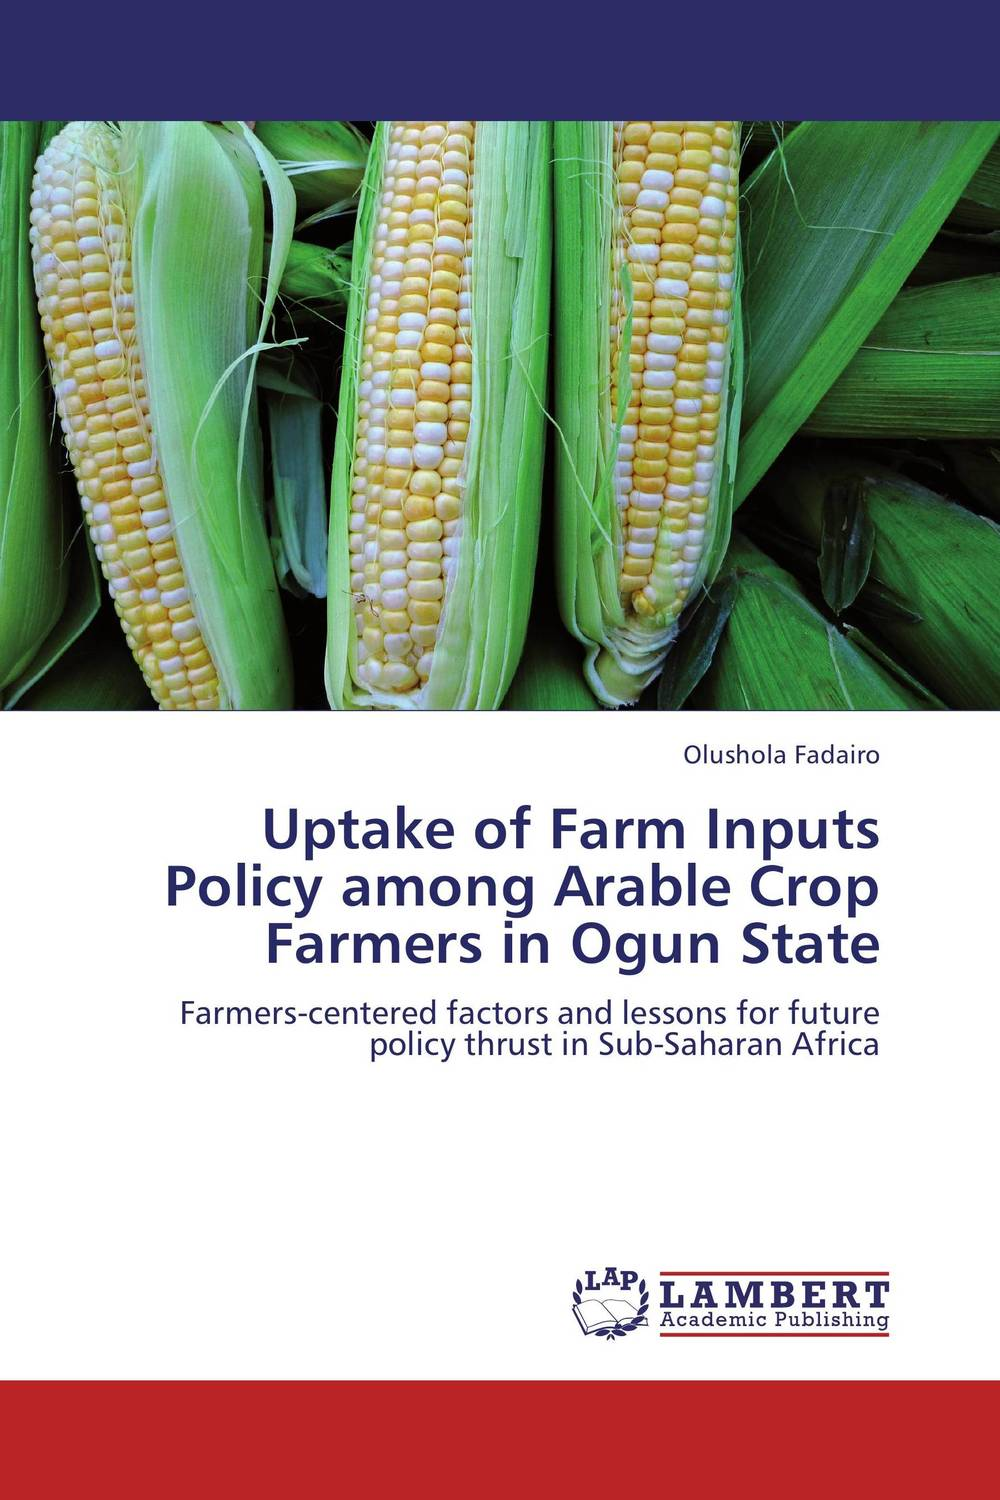 Uptake of Farm Inputs Policy among Arable Crop Farmers in Ogun State handbook of agricultural economics volume 3 agricultural development farmers farm production and farm markets handbook of agricultural economics handbook of agricultural eco